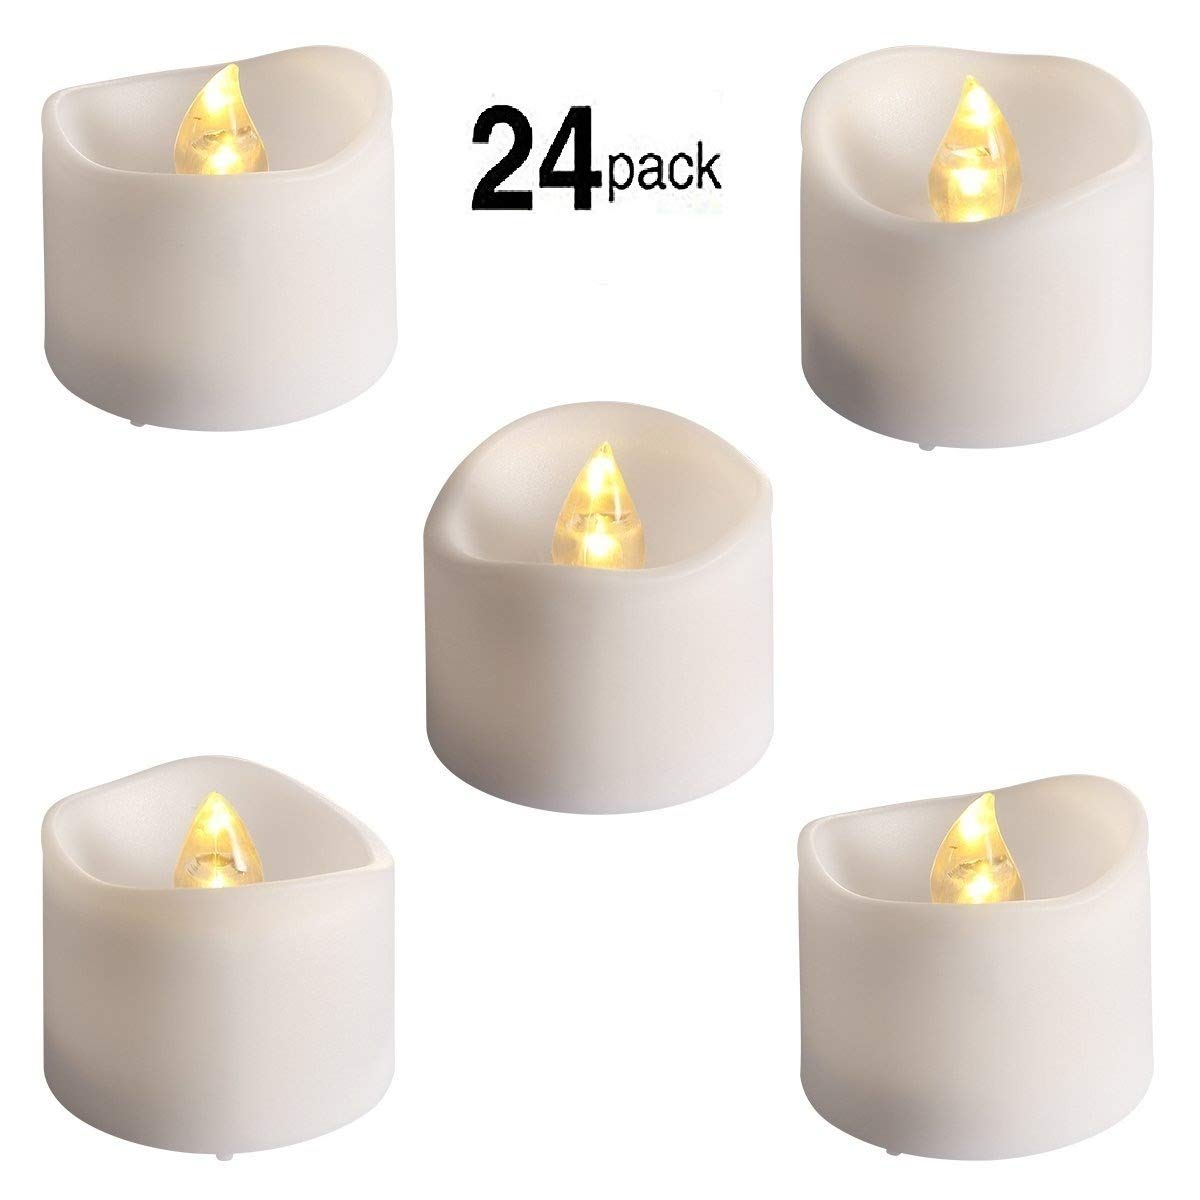 24 Pcs Flameless Led Tealights Electric Bulb Battery Operated Realistic and Bright Flickering Fake Candles for Seasonal & Festival Celebration,Warm White and Wave Open by Good Electonic